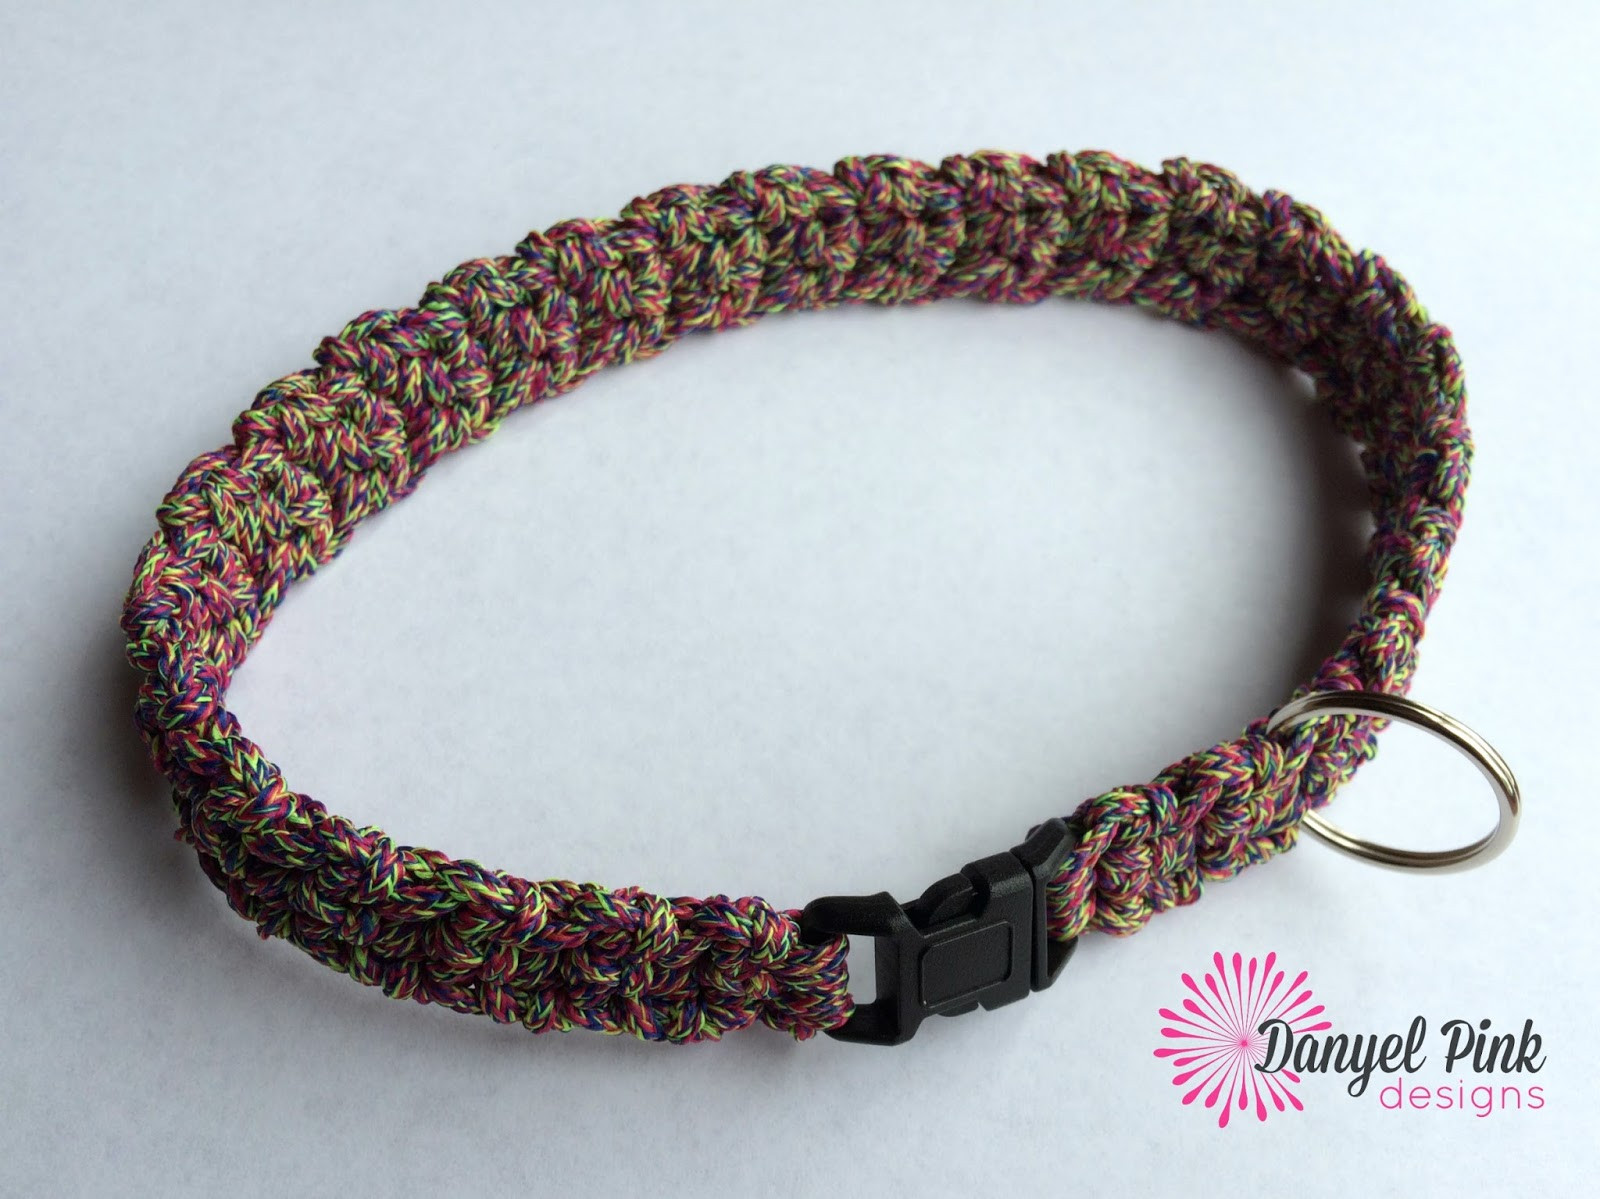 Crochet Dog Collar Beautiful Danyel Pink Designs Crochet Pattern Cordial Pet Collar Of Gorgeous 50 Ideas Crochet Dog Collar